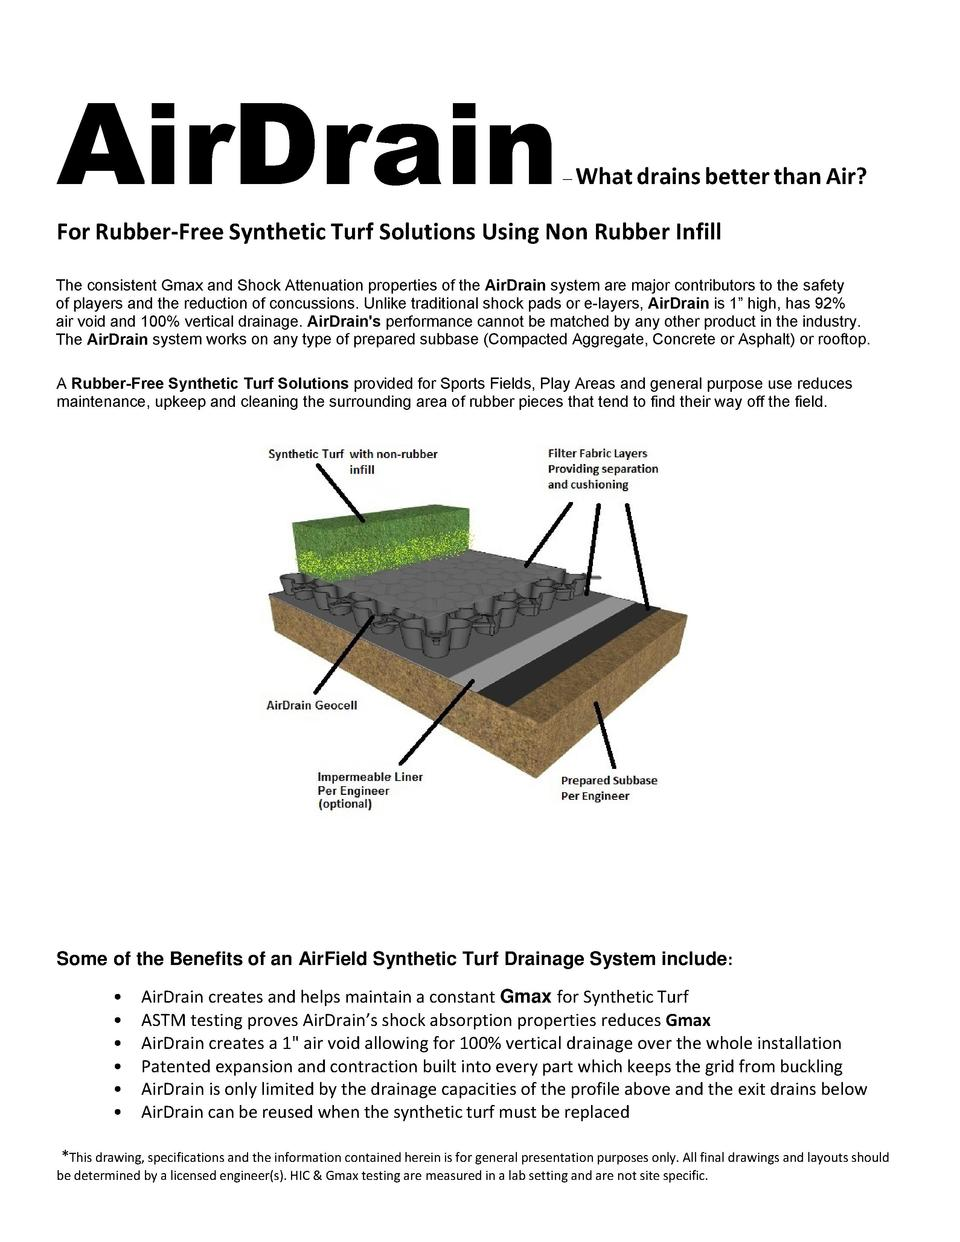 AirDrain      What drains better than Air   For Rubber-Free Synthetic Turf Solutions Using Non Rubber Infill The consisten...